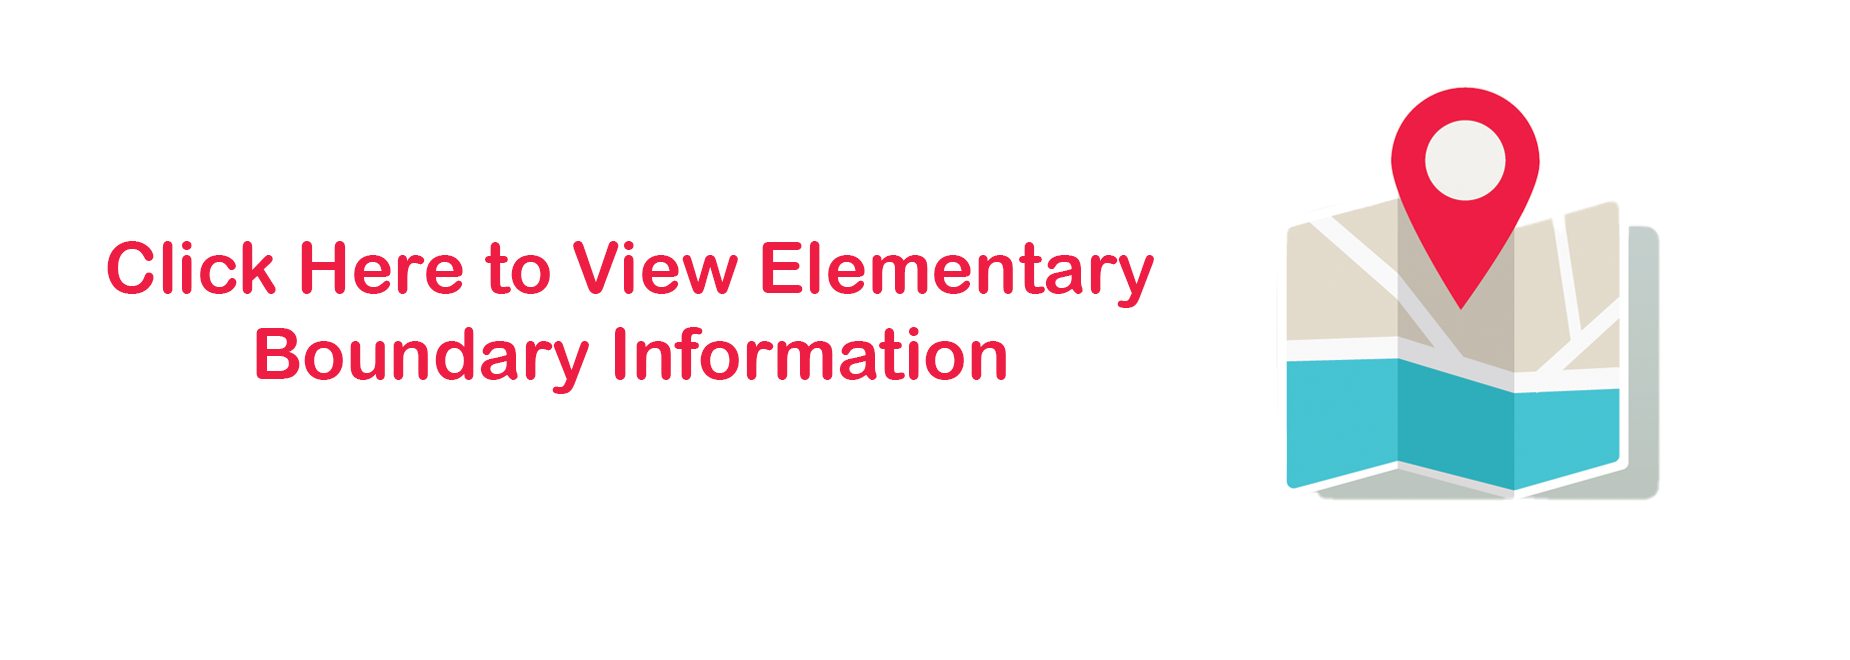 Click here for elementary boundary information